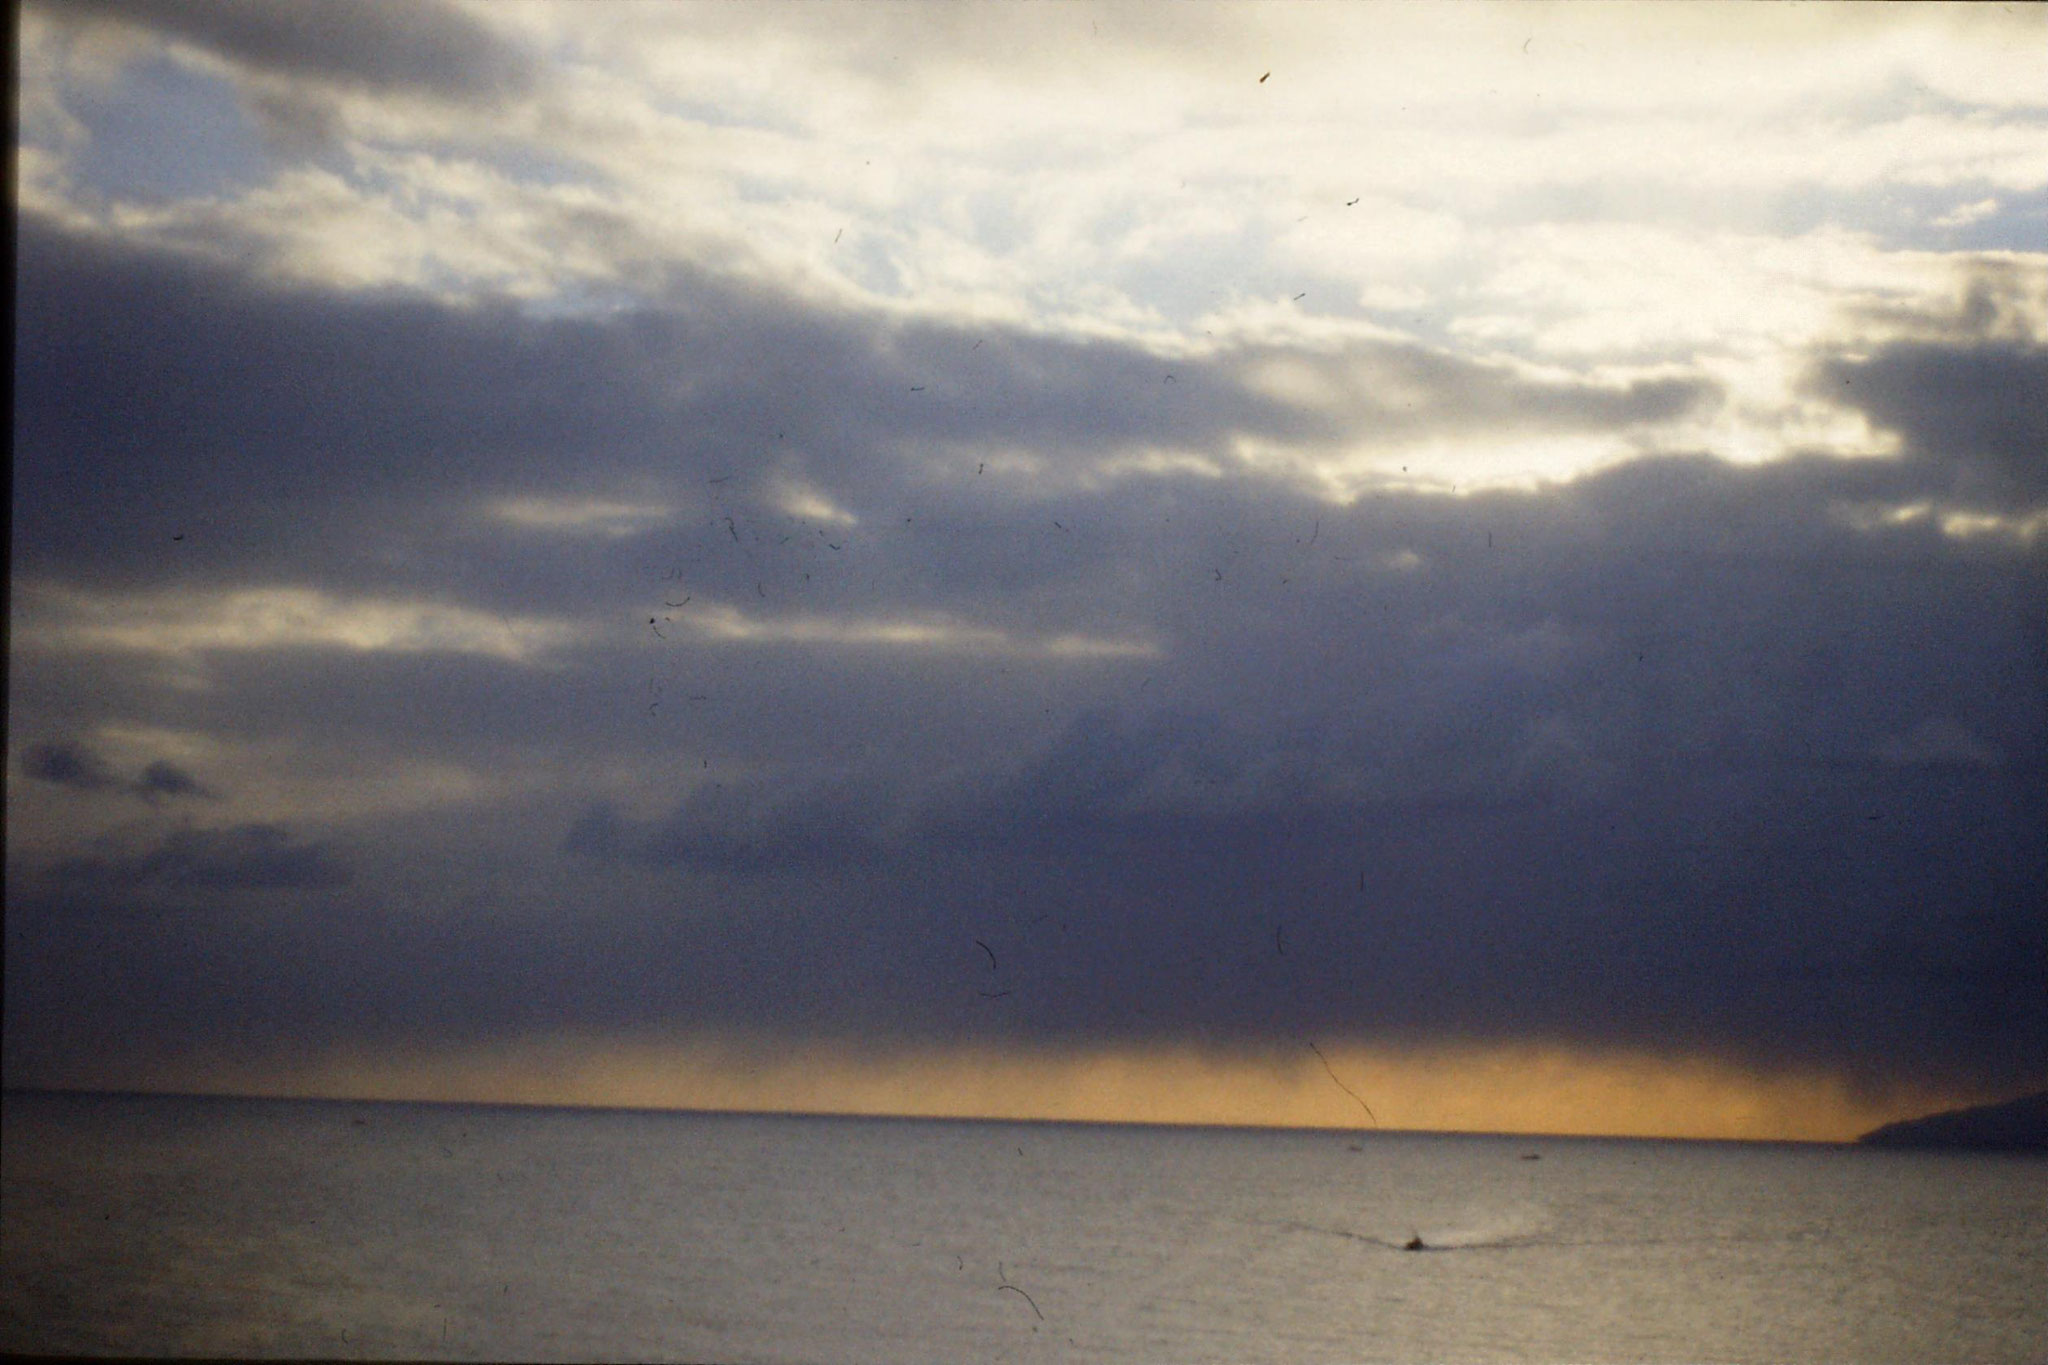 16/1/1989: 29: sunrise leaving Hakodate